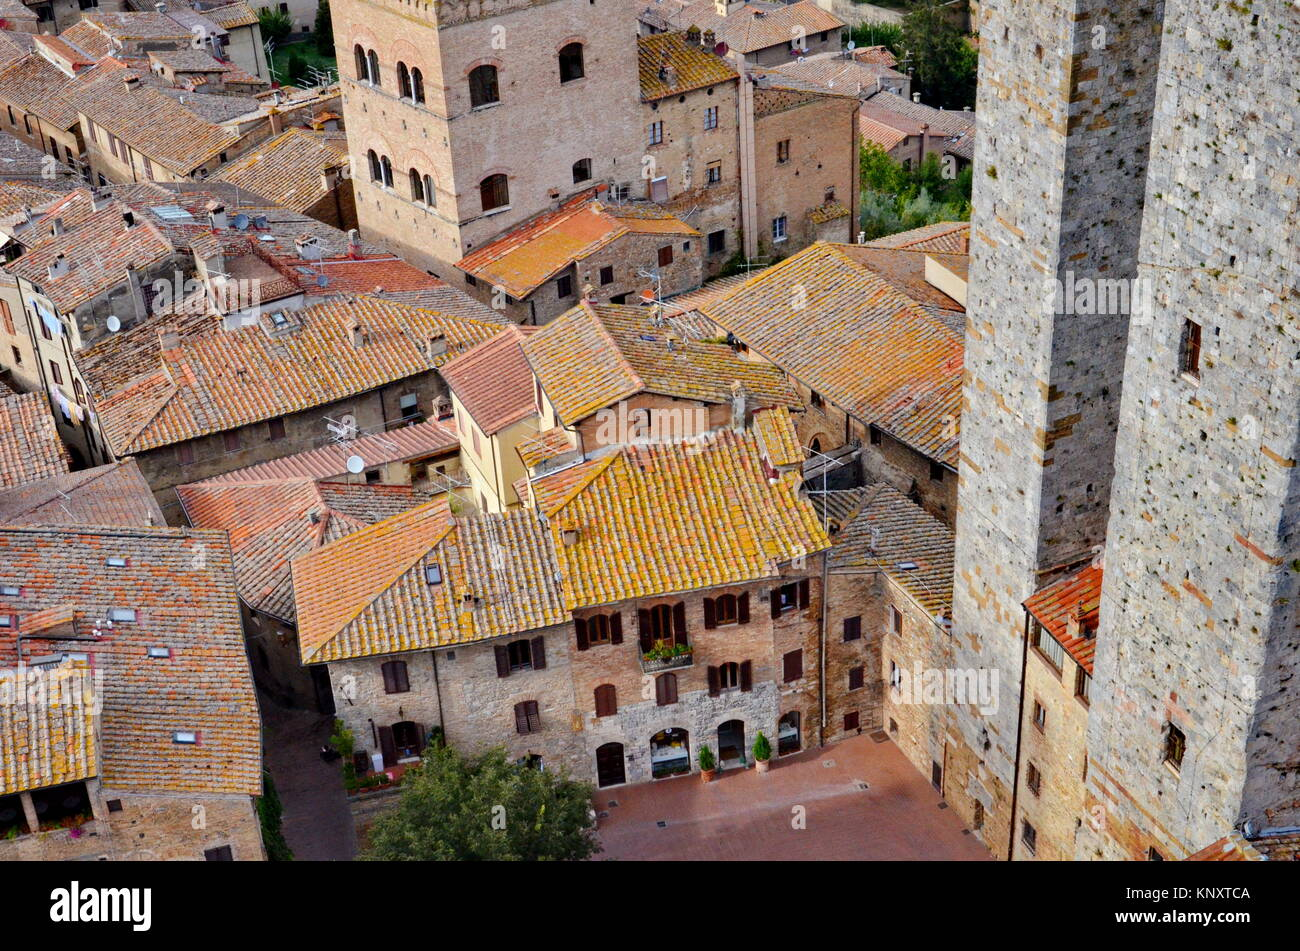 Old style rooftops and roof tiles in Italy - Stock Image